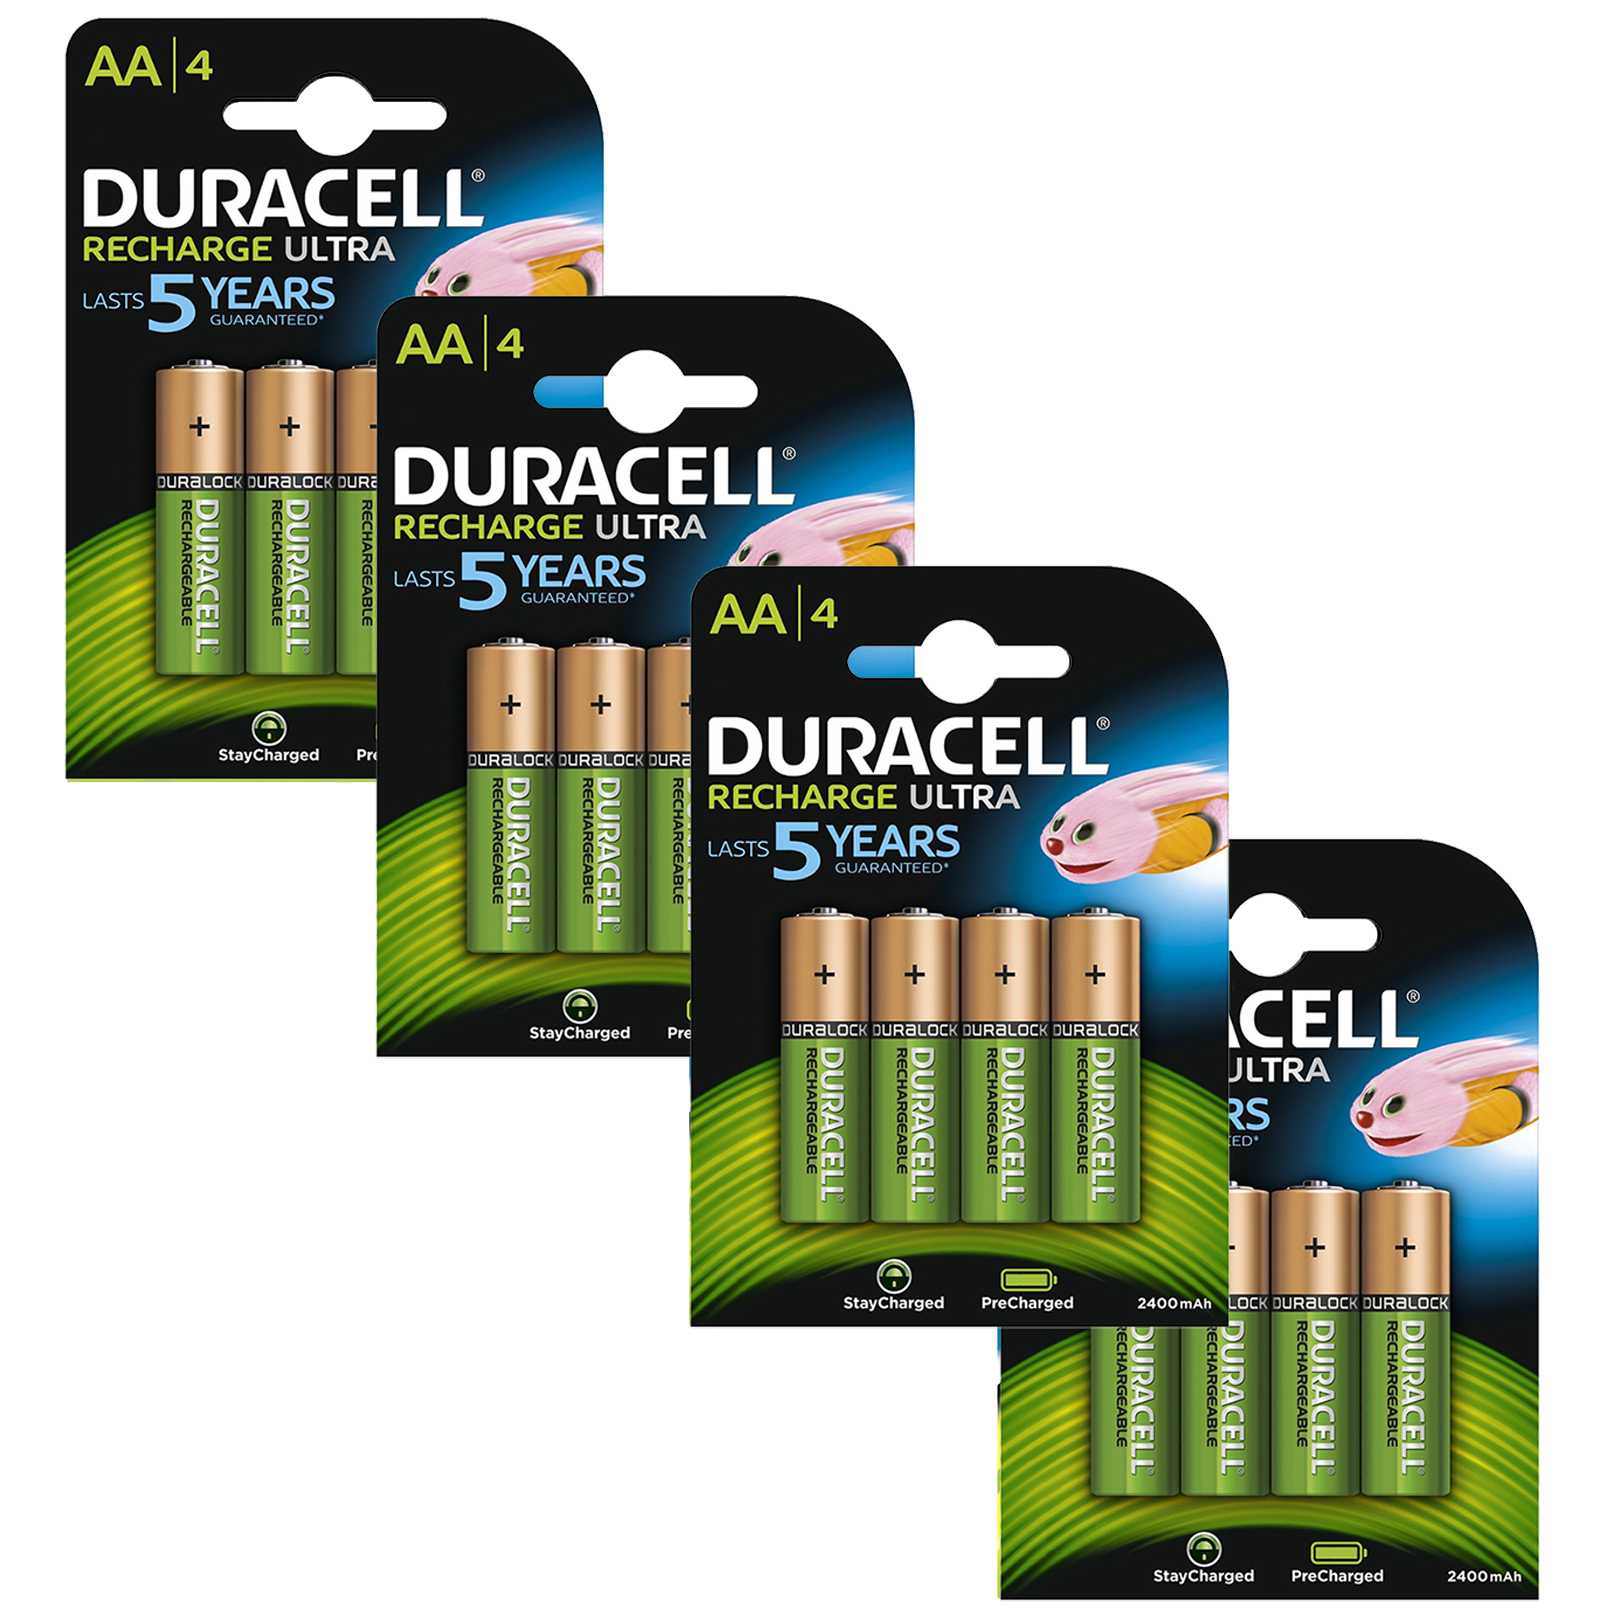 Duracell Duralock Precharged Rechargeable AA Batteries (2400mAh)  16 Pack